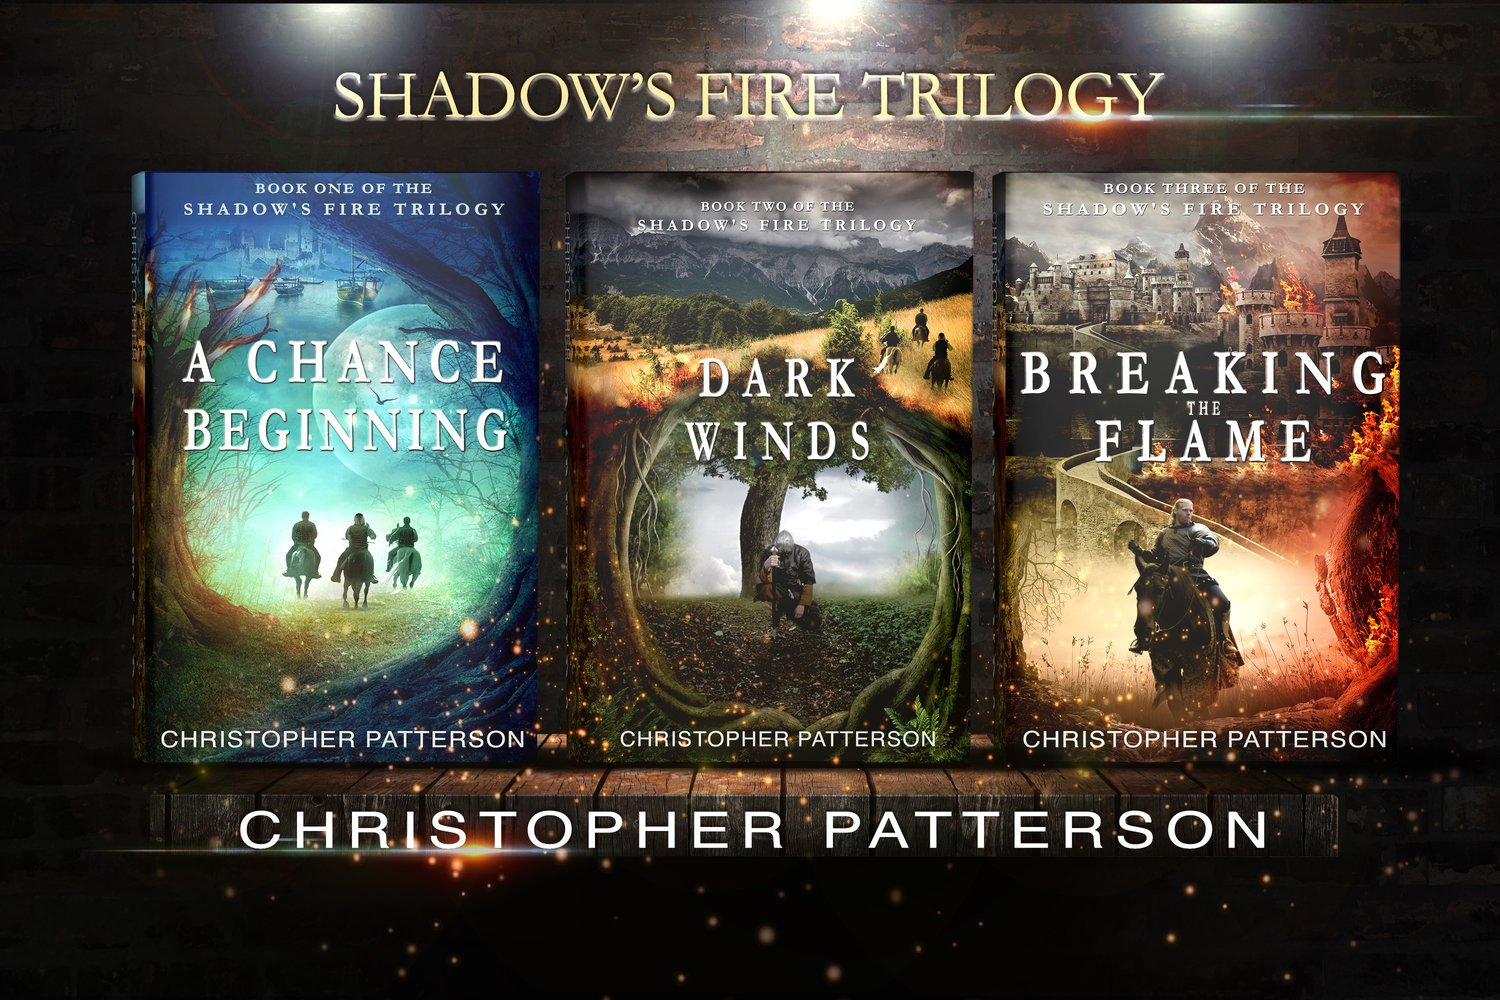 Christopher Patterson - Author Shadow's Fire Trilogy